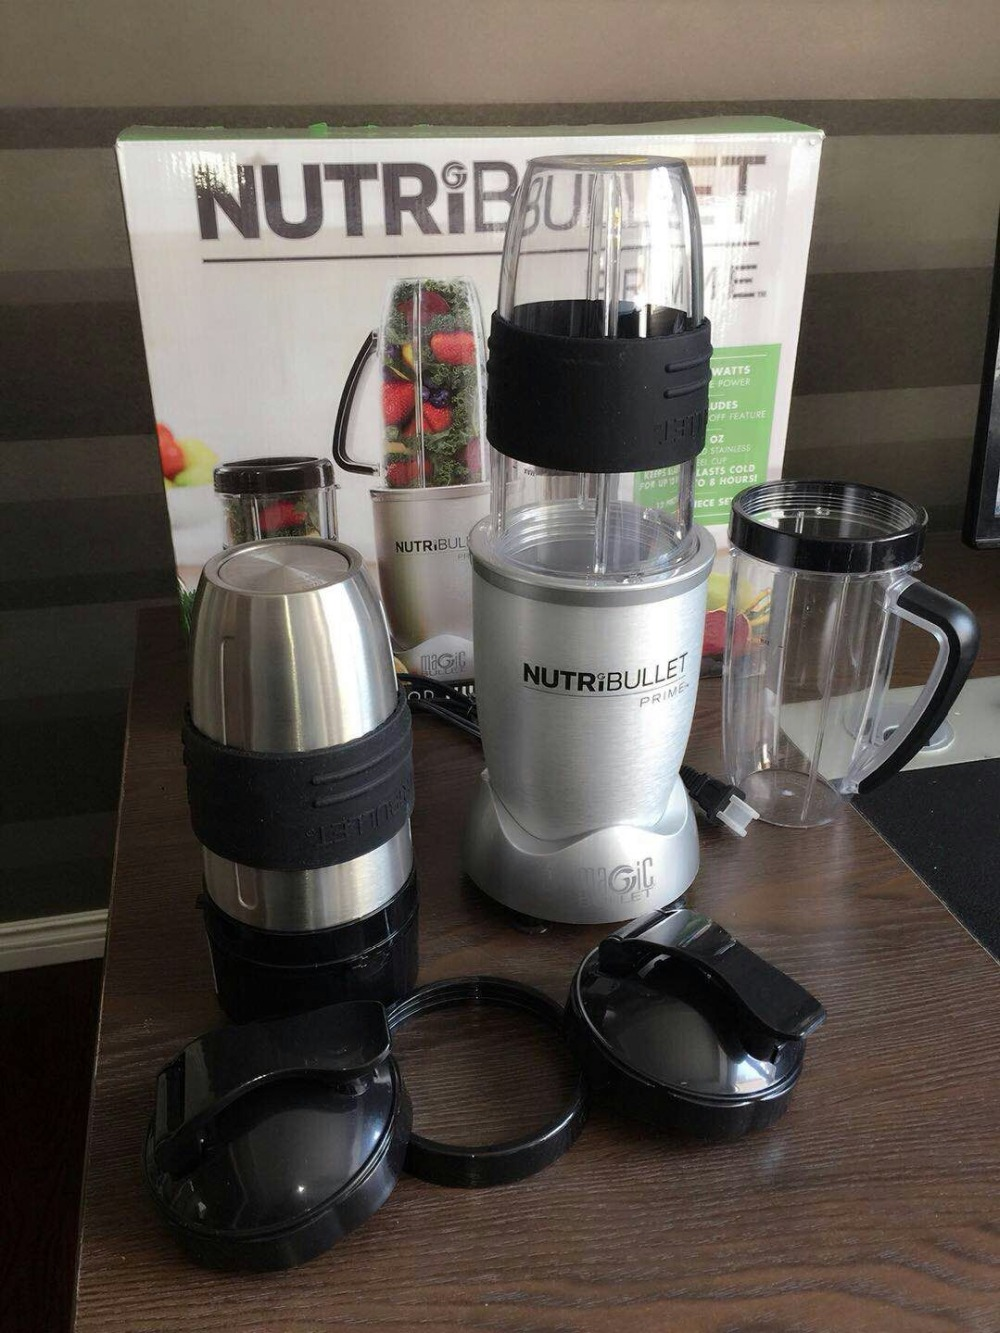 1000W Nutri blender mixer with EU UK AU plugs blender /juice extractor /smoothie maker1000W Nutri blender mixer with EU UK AU plugs blender /juice extractor /smoothie maker